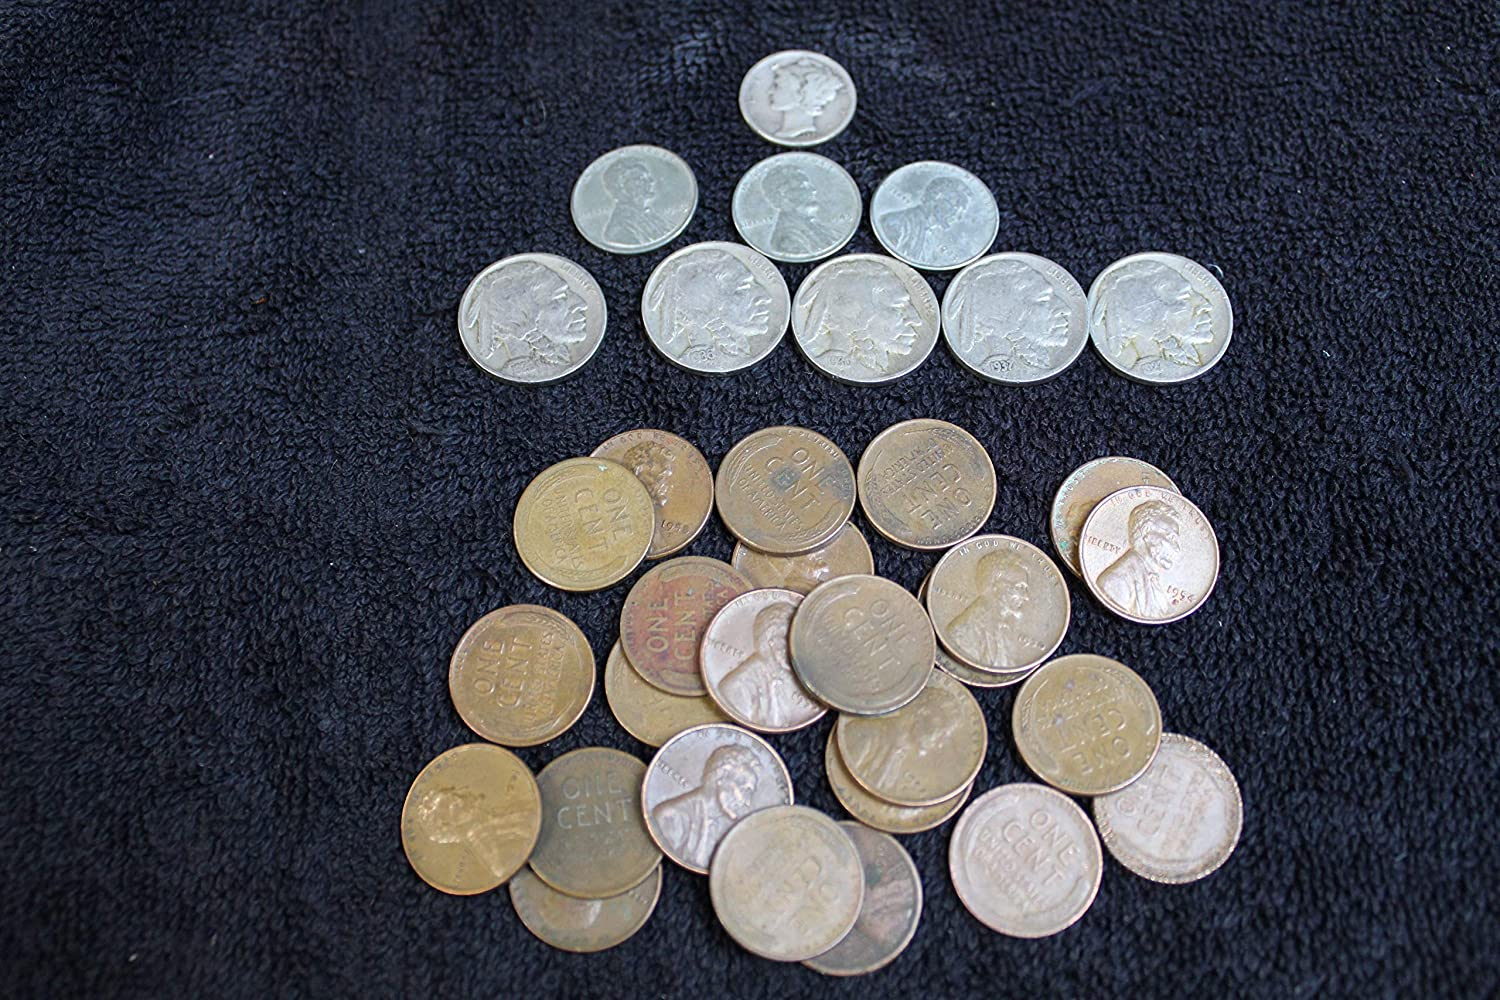 U.S 7 Coin Grab Bag Buffalo Nickels 7 Different Dates from 1913 to 1938 Nickel Circulated to Fine Indian Head